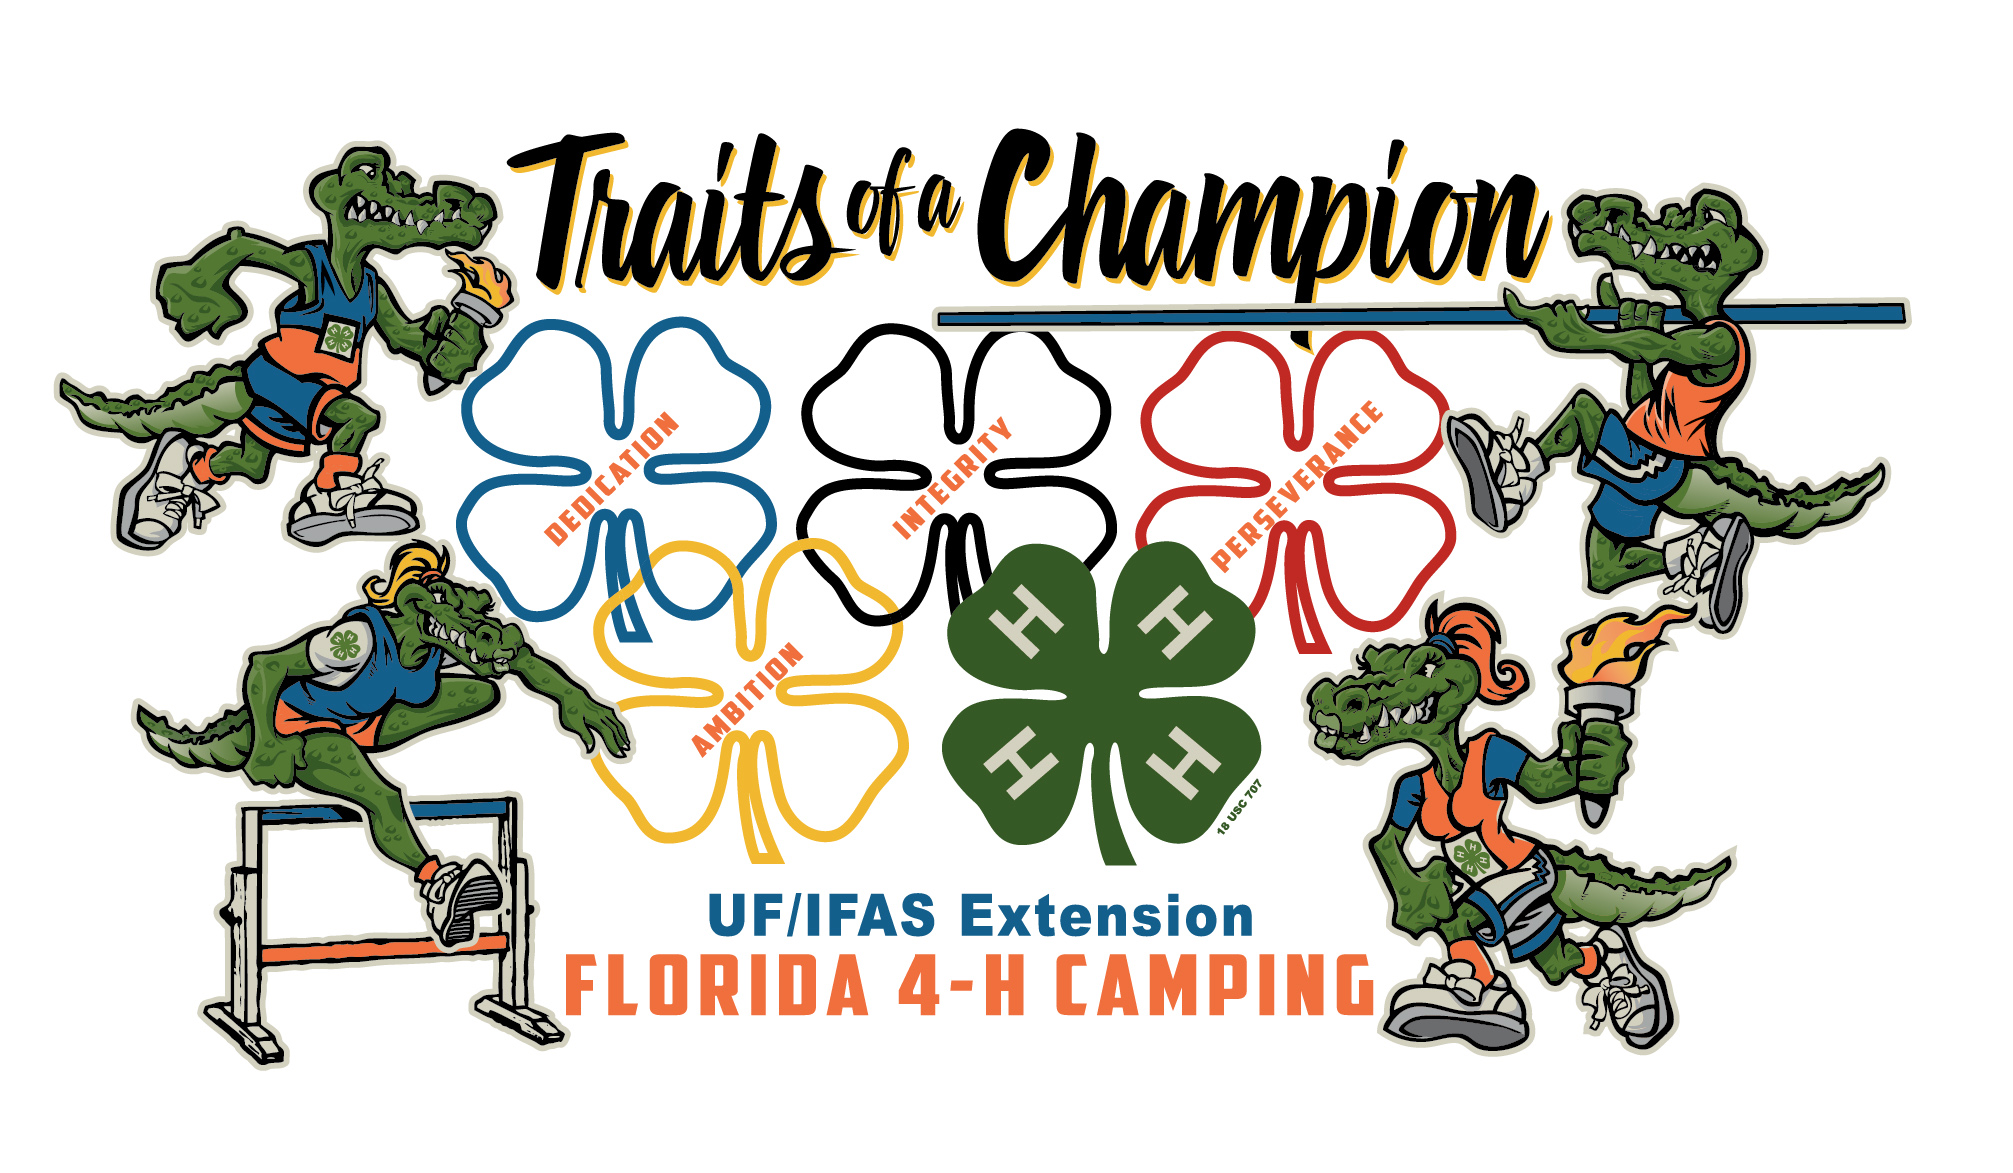 Camp clipart 4 h Events 4 Activities Solutions UF/IFAS